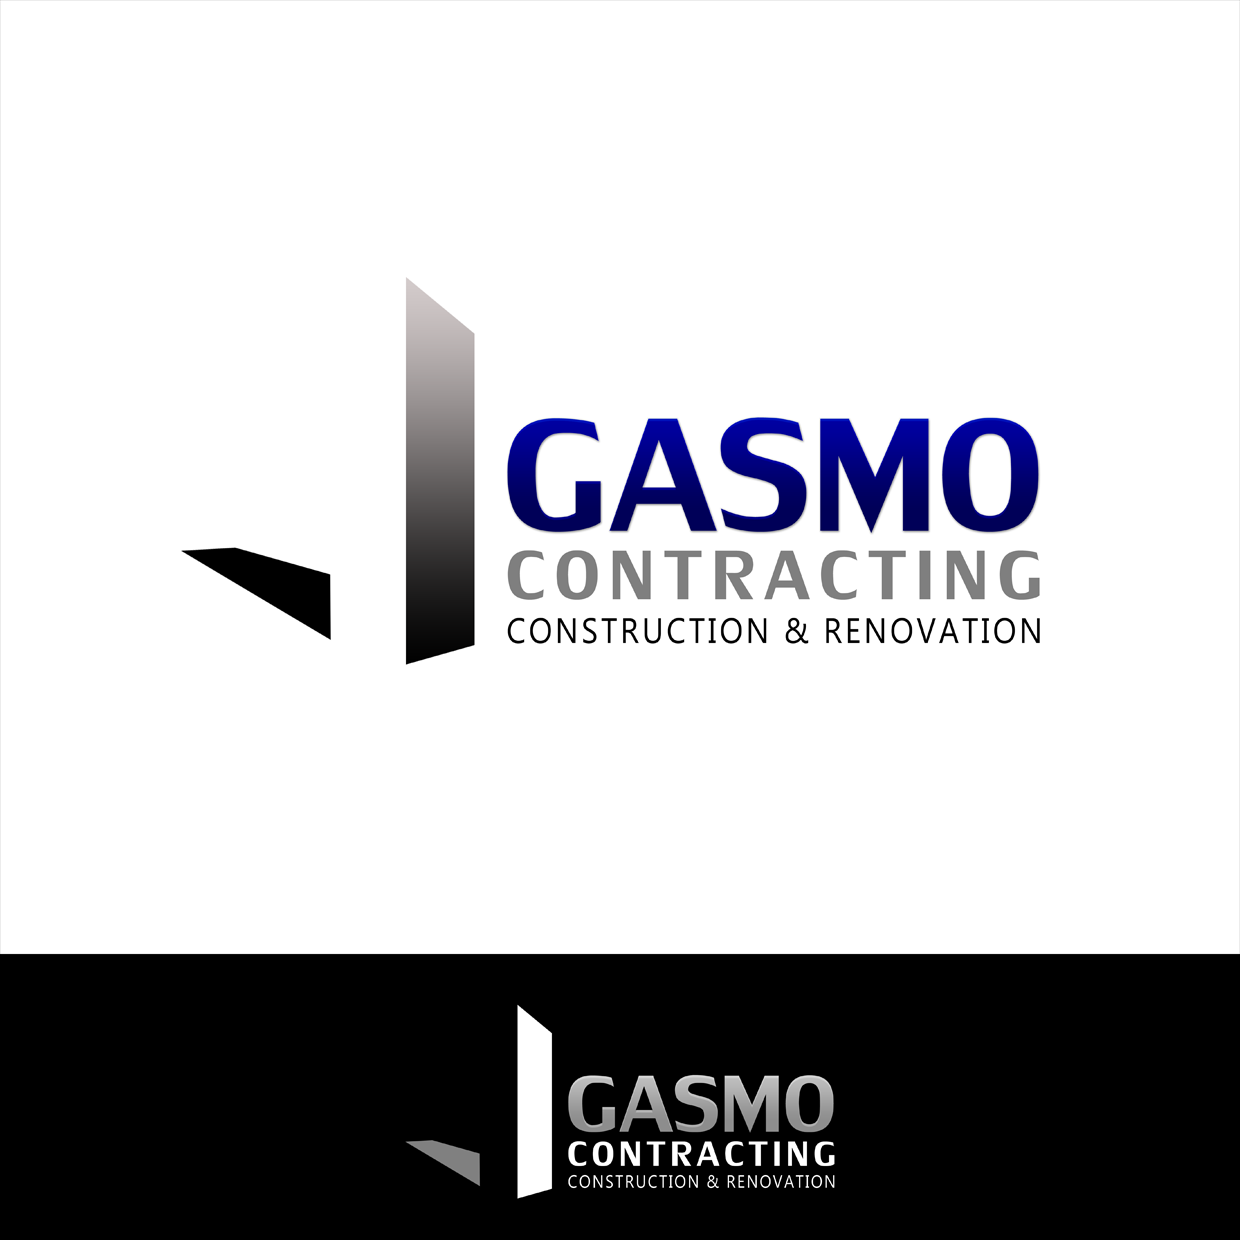 Logo Design by Carolina - Entry No. 43 in the Logo Design Contest Professional Logo Design for Gasmo Contracting.